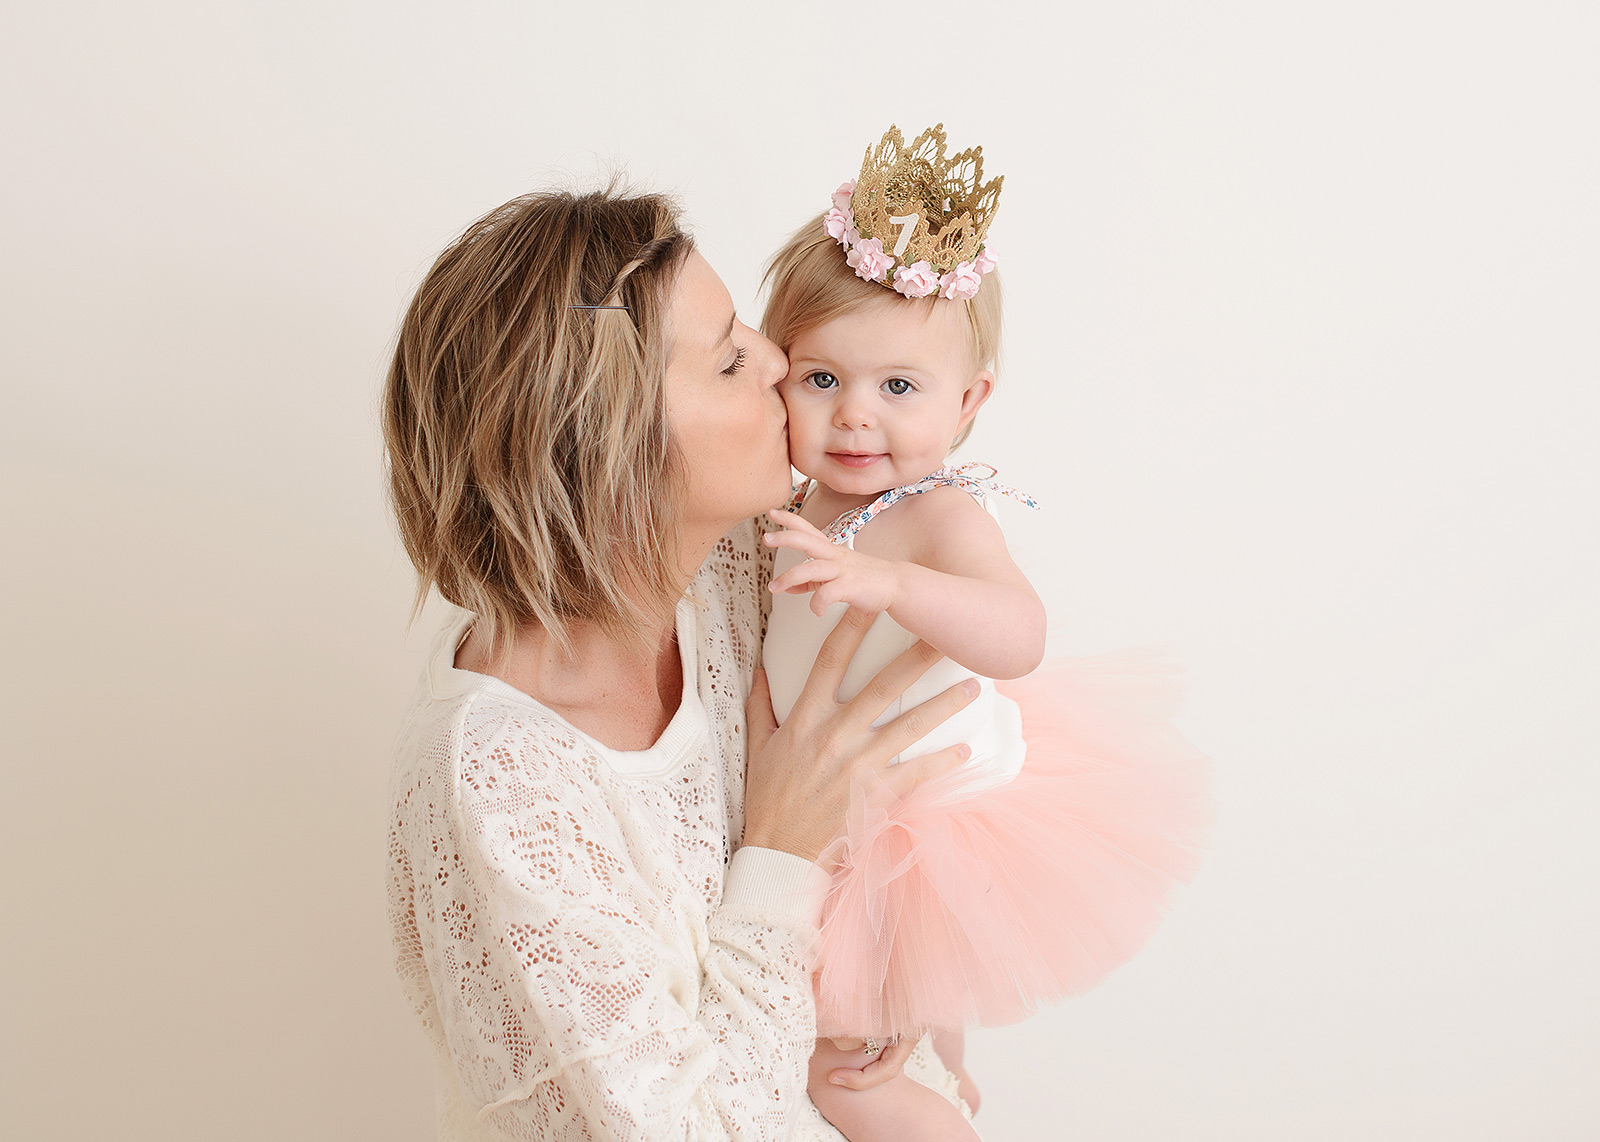 Mom kissing baby girl and celebrating one year